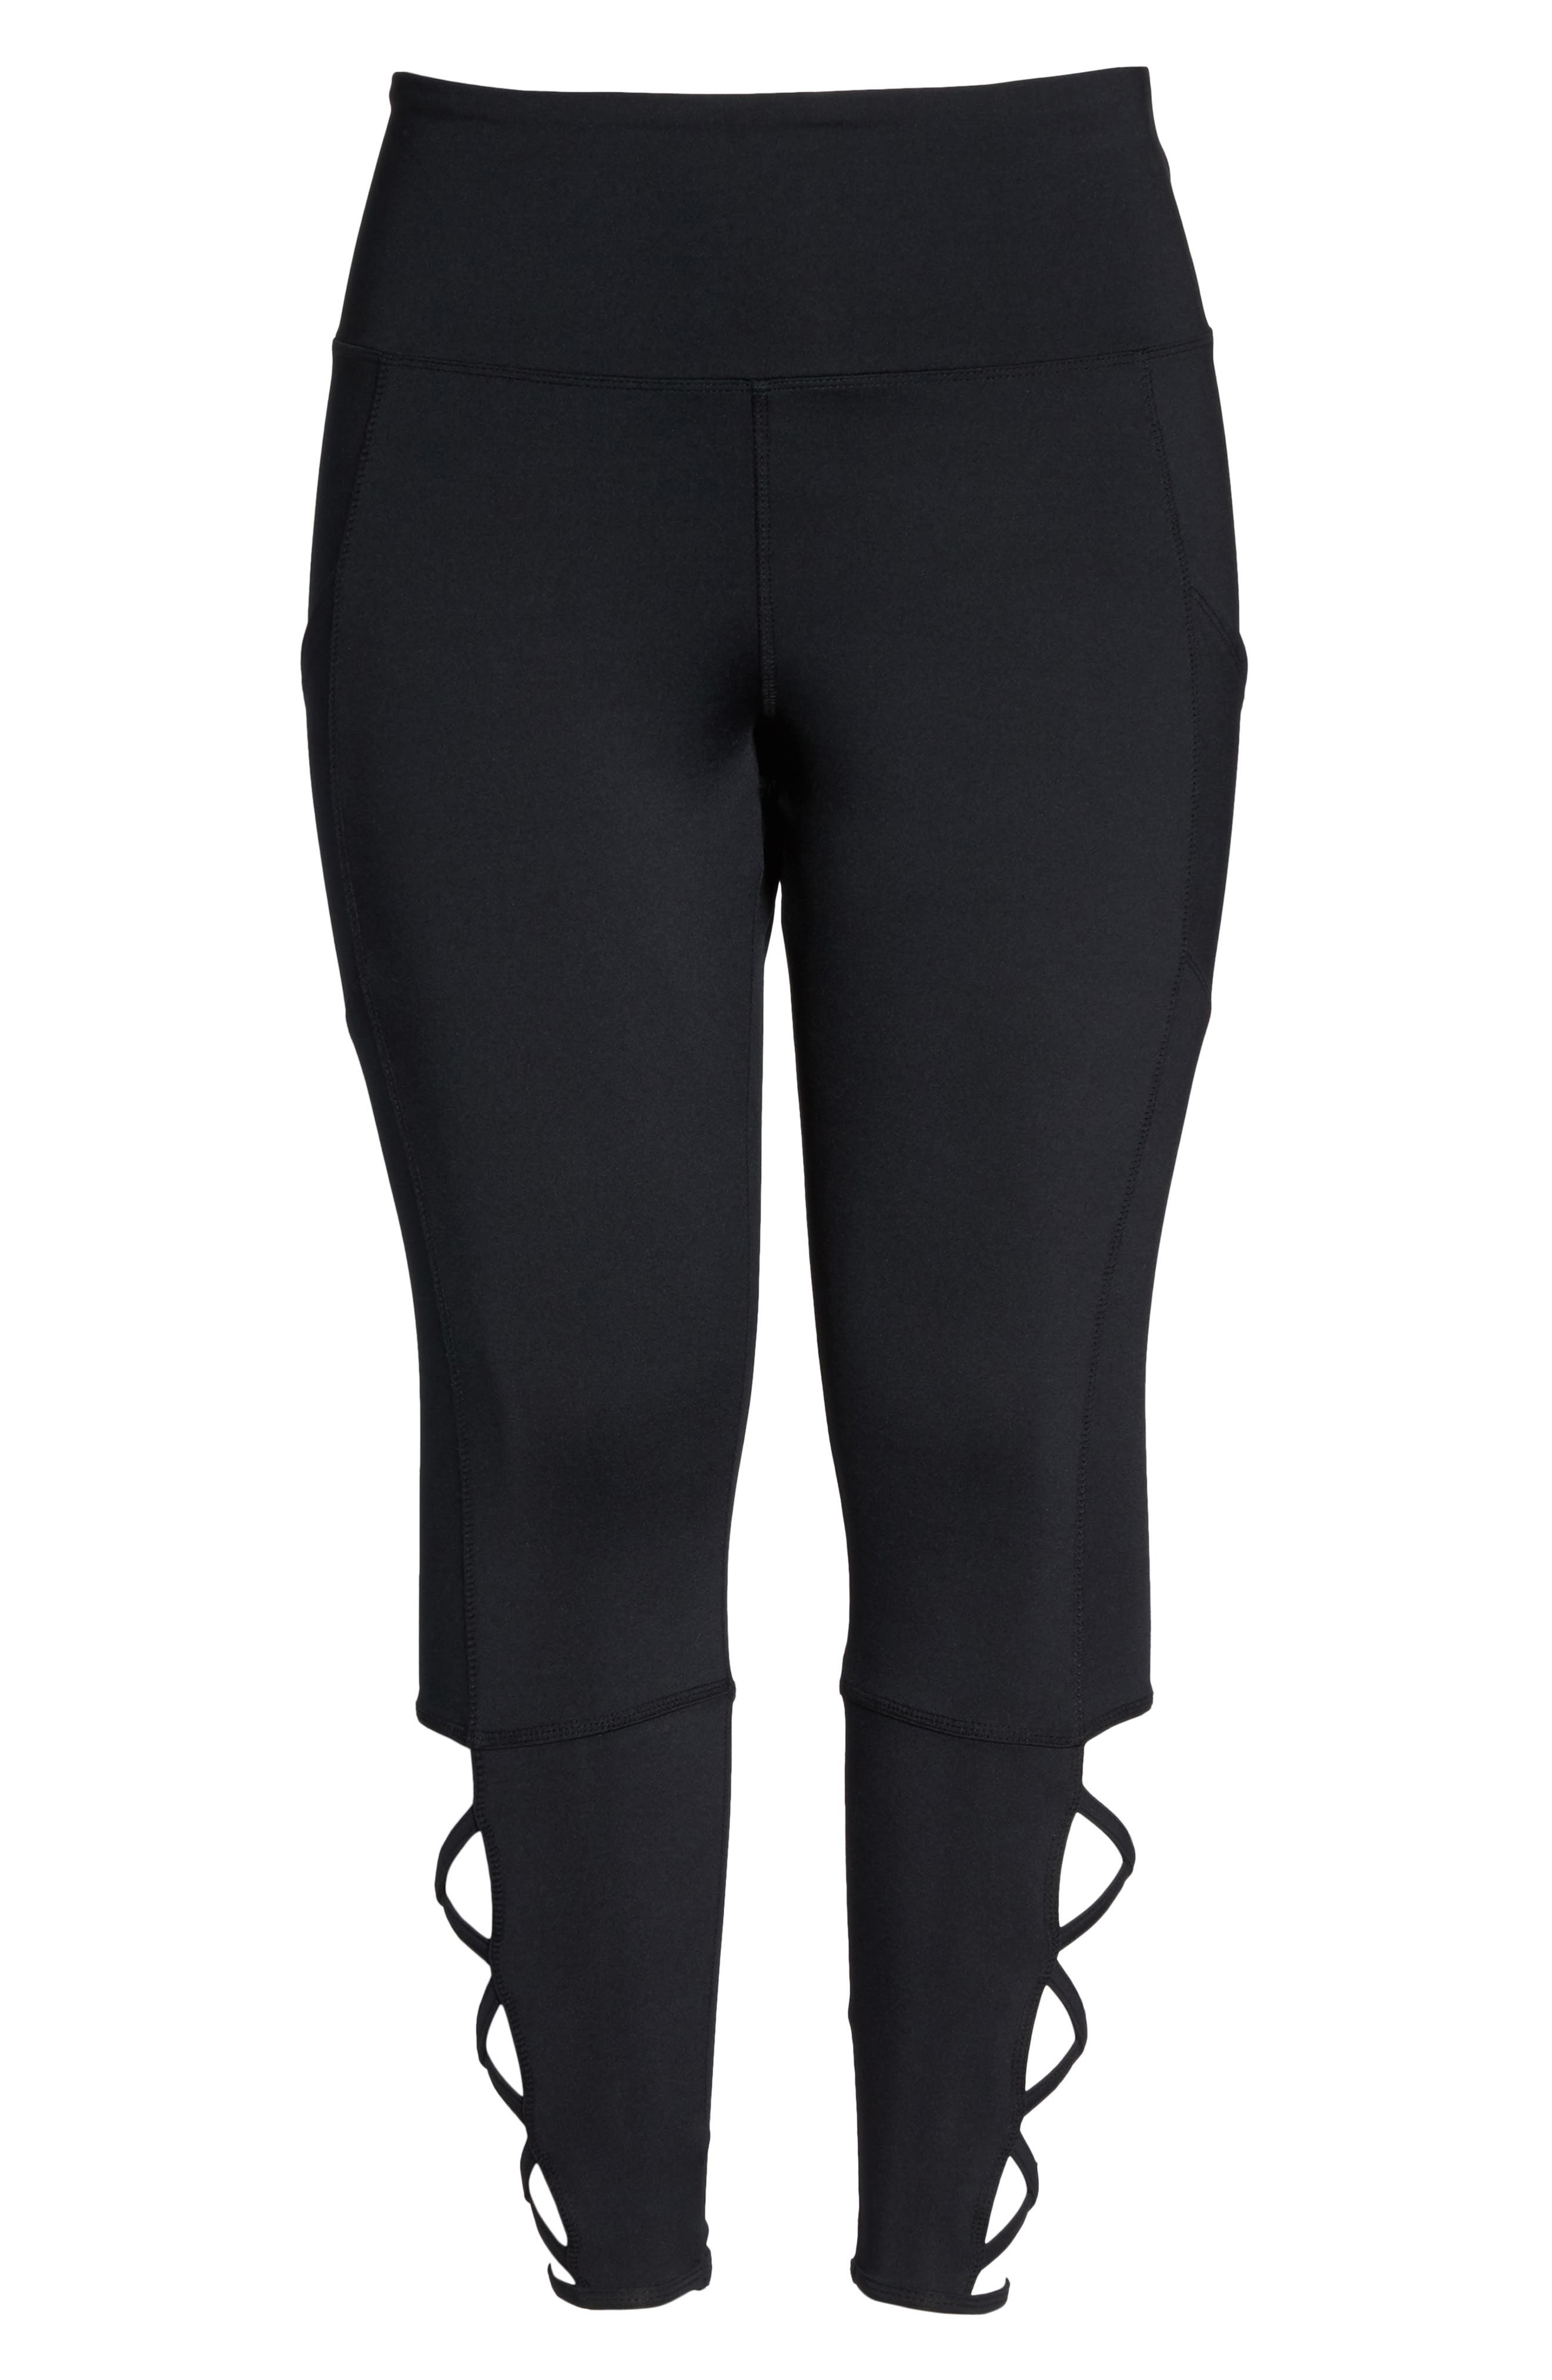 Lux Ankle Leggings,                             Alternate thumbnail 6, color,                             001